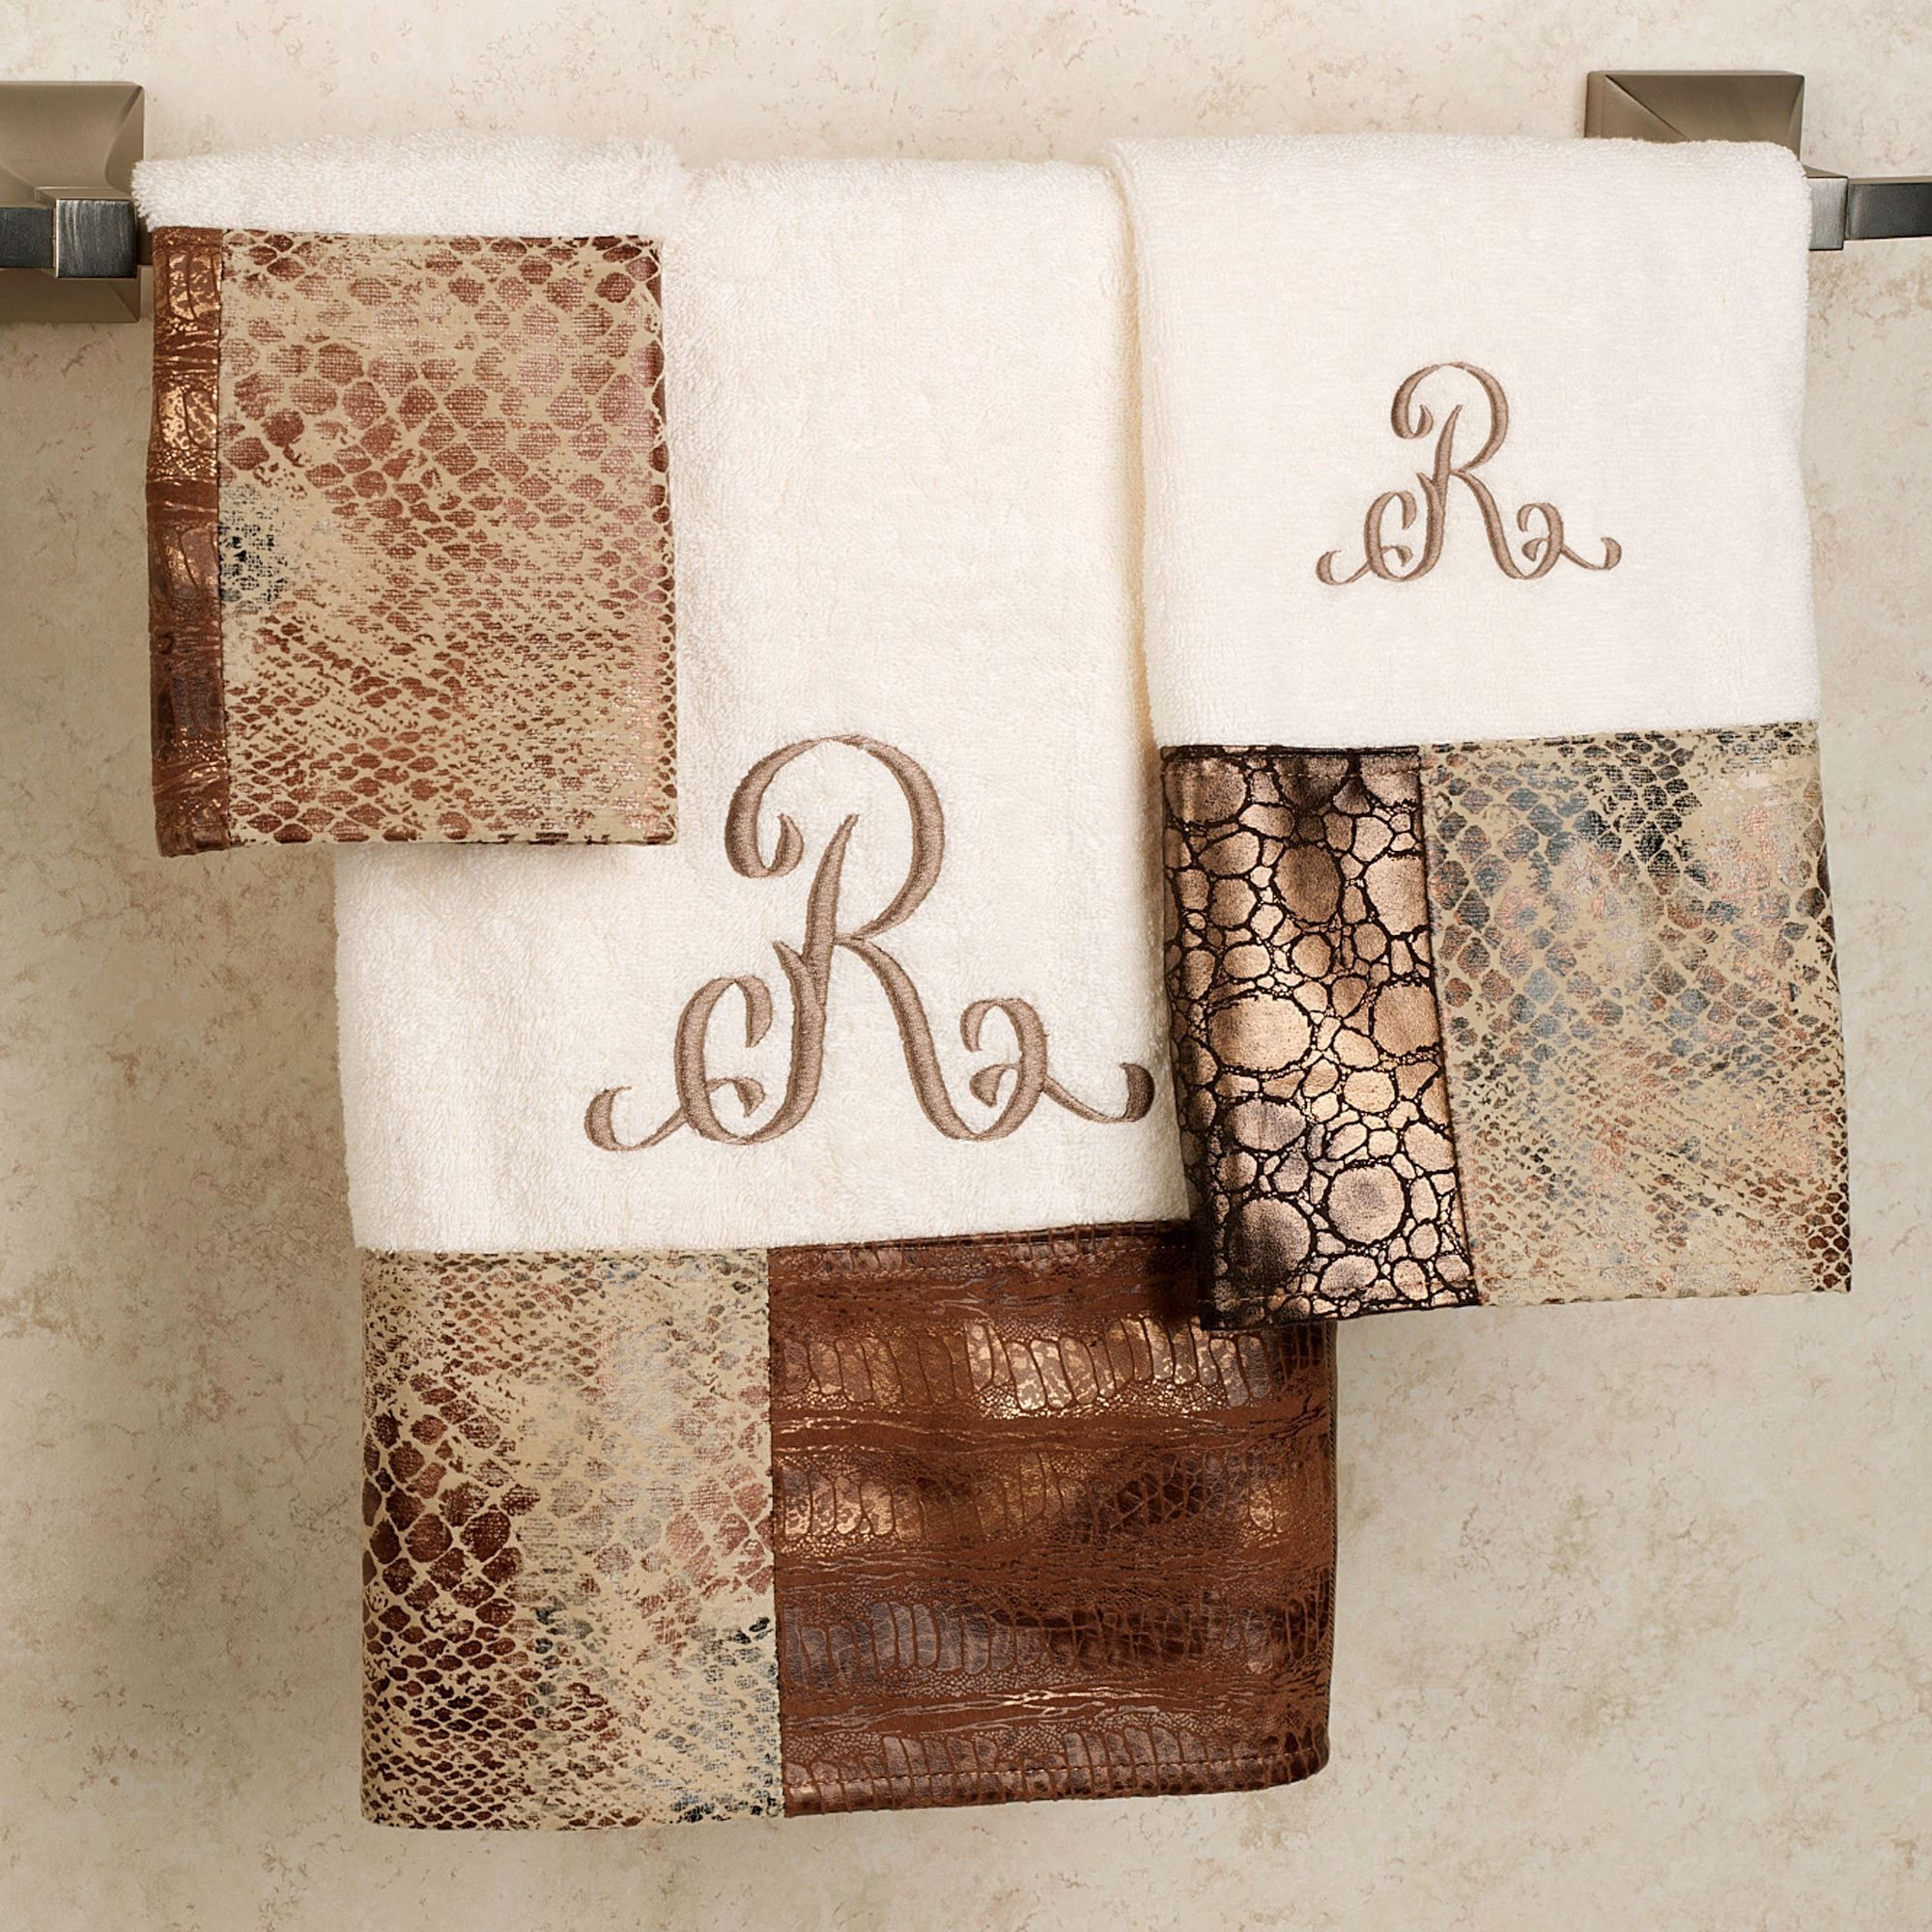 Etonnant The Zambia Bath Towel Set Will Liven Up Your Bathroom. Terry Looped, Beige  Cotton Towels Feature A Band Of Faux Animal Skin Designs In Colors Of  Ivory,.